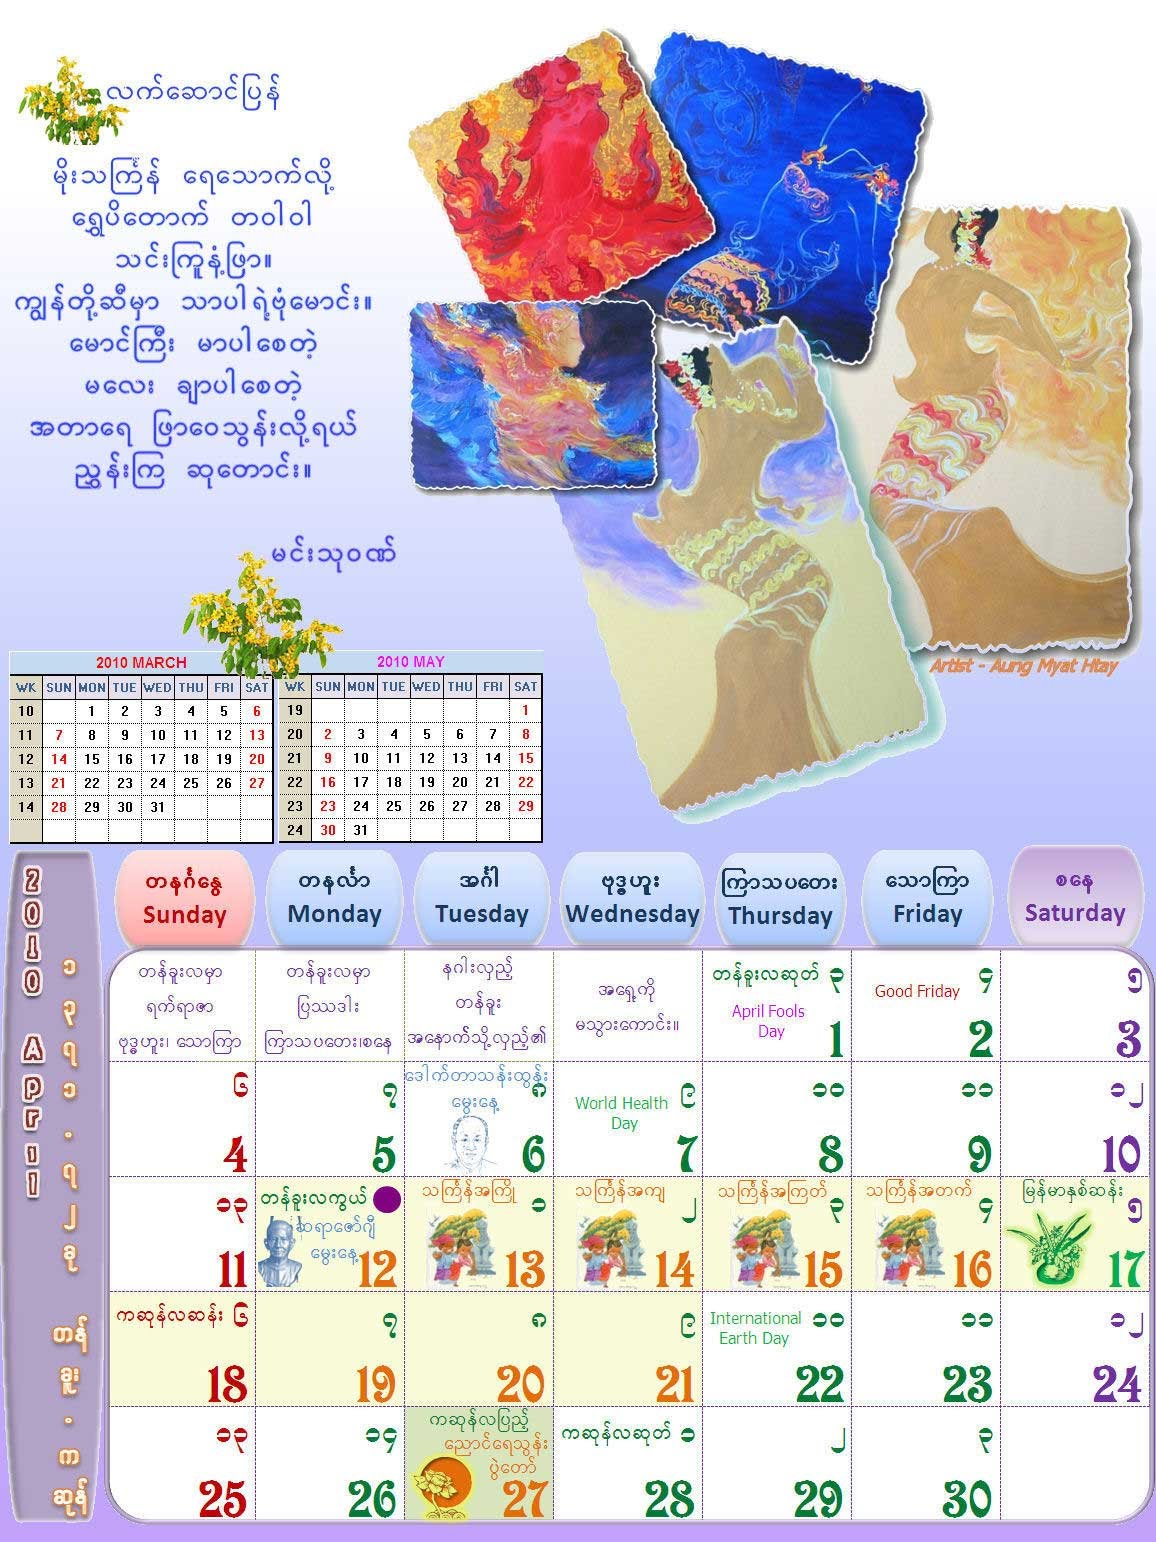 New Calendar Google Search Google Calendar Burmese Calendar 2010 Soenainglin